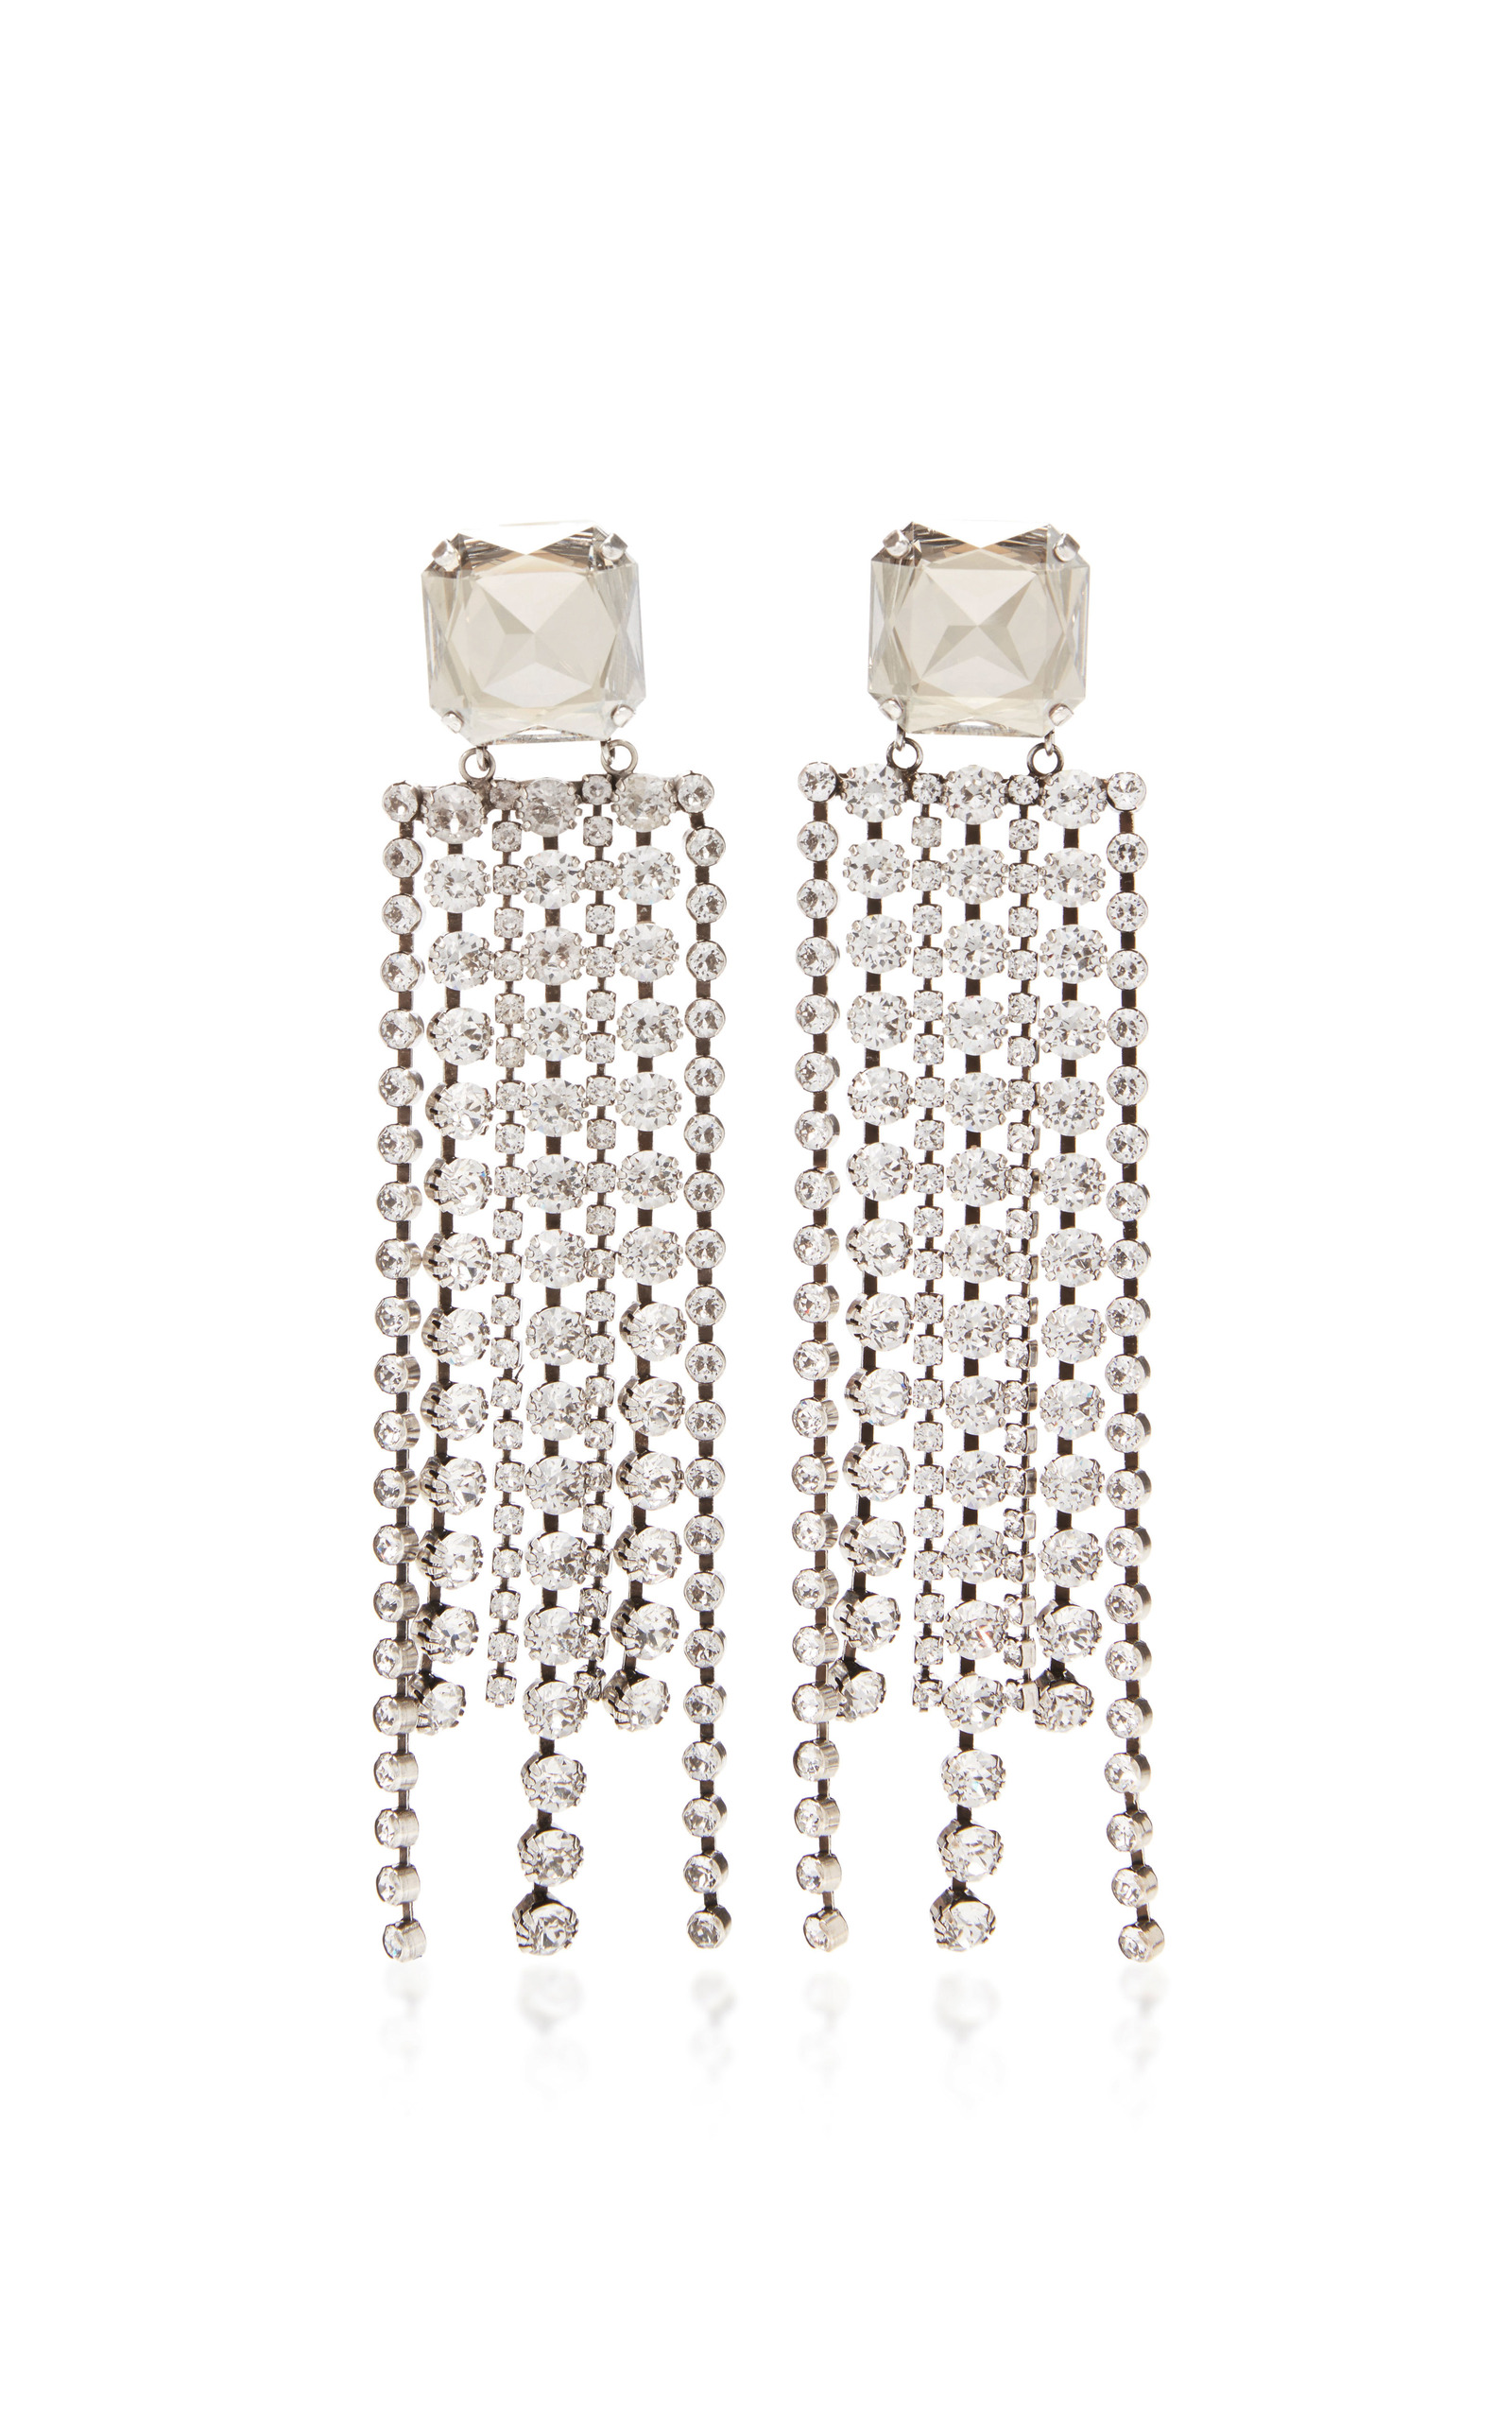 Crystal earrings Isabel Marant z6cfVQB